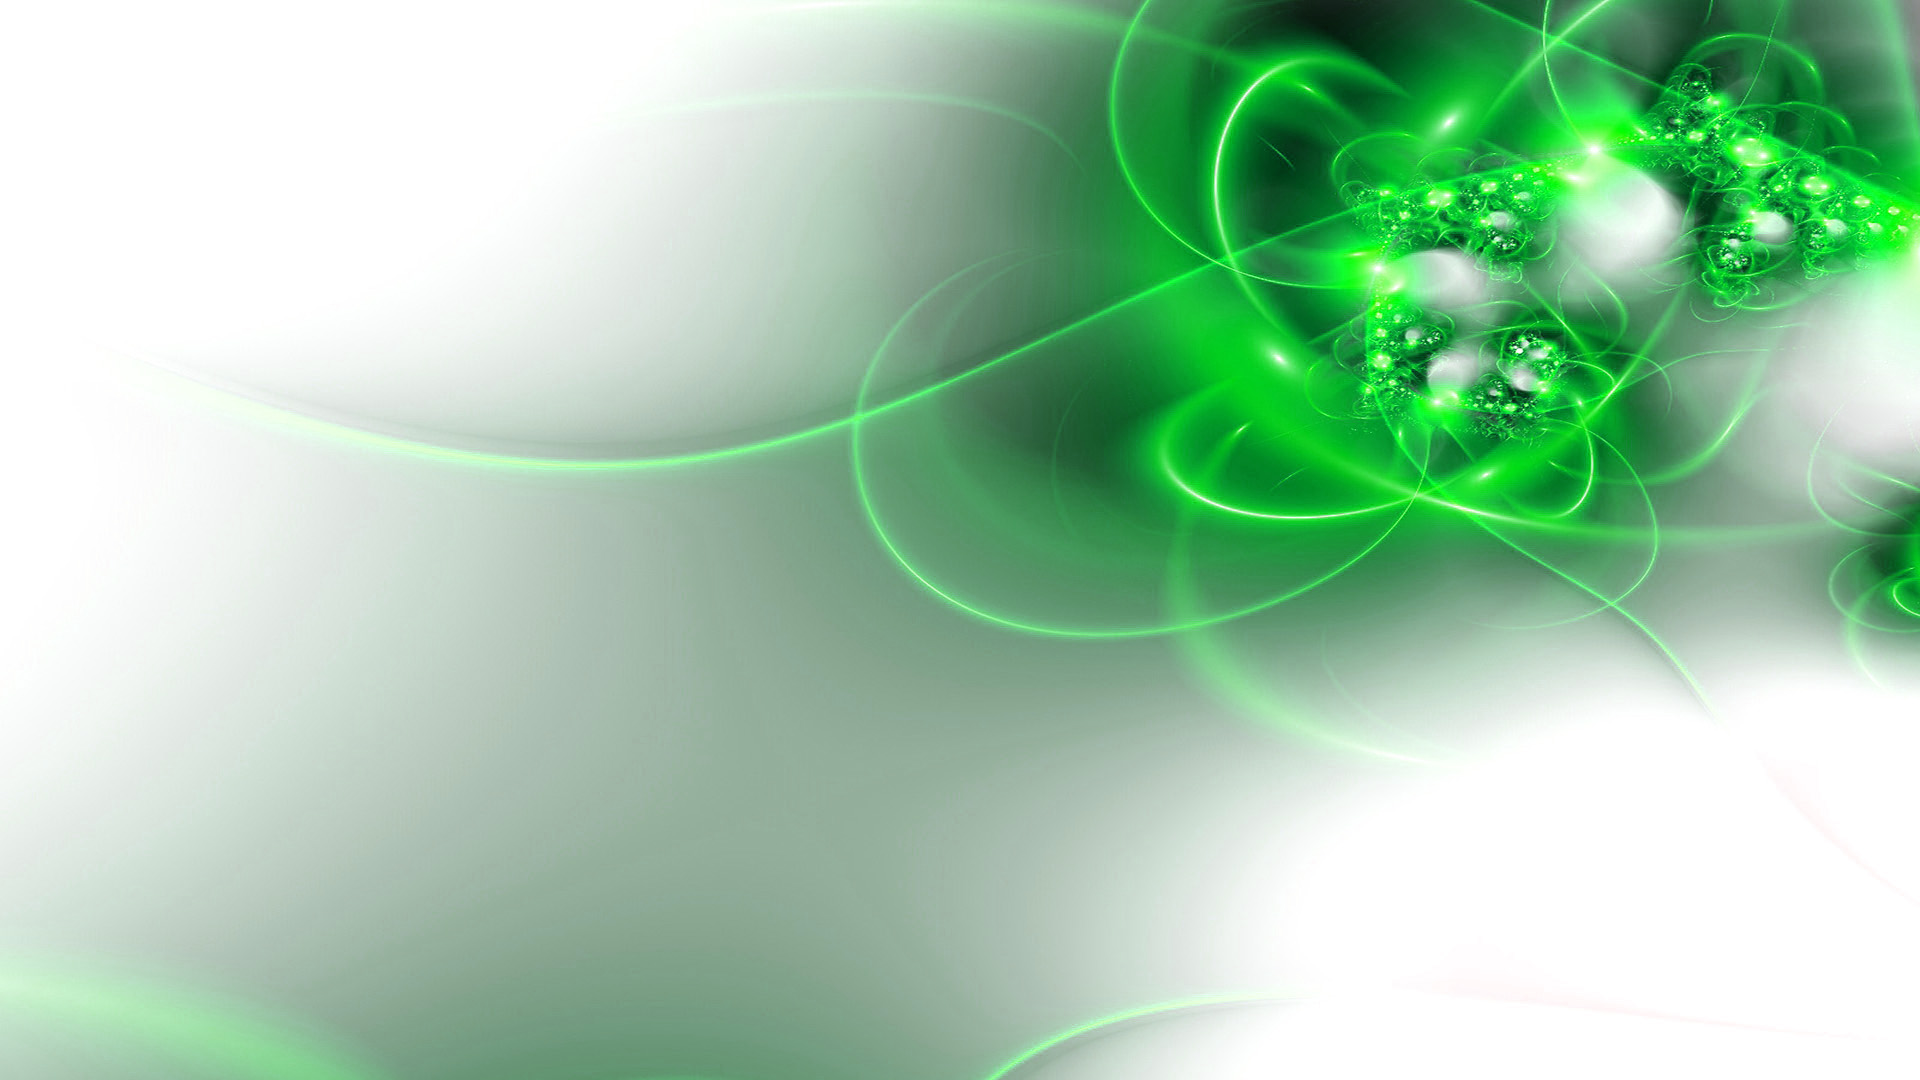 Abstract wallpapers green #7